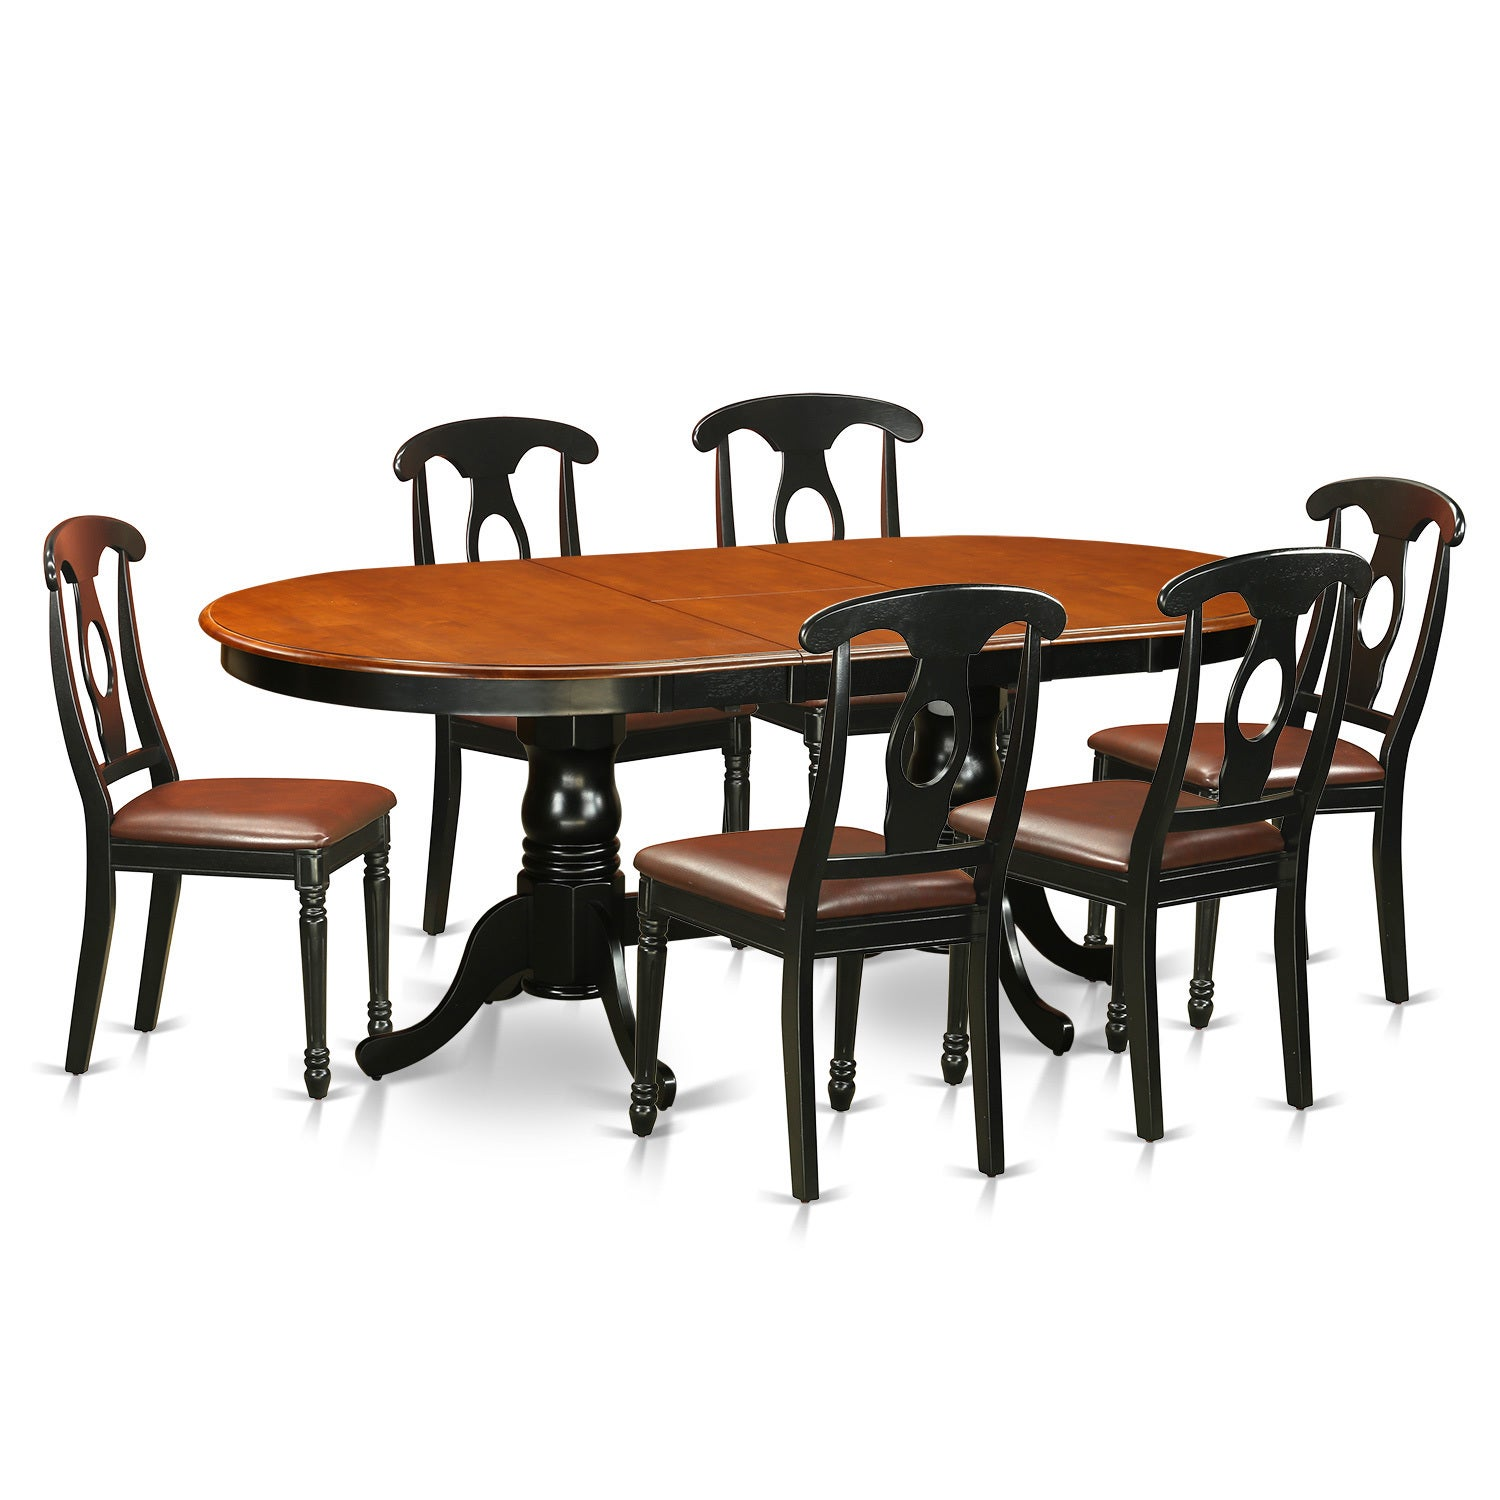 plke7 bch rubberwood dining table with 6 chairs faux leather ebay